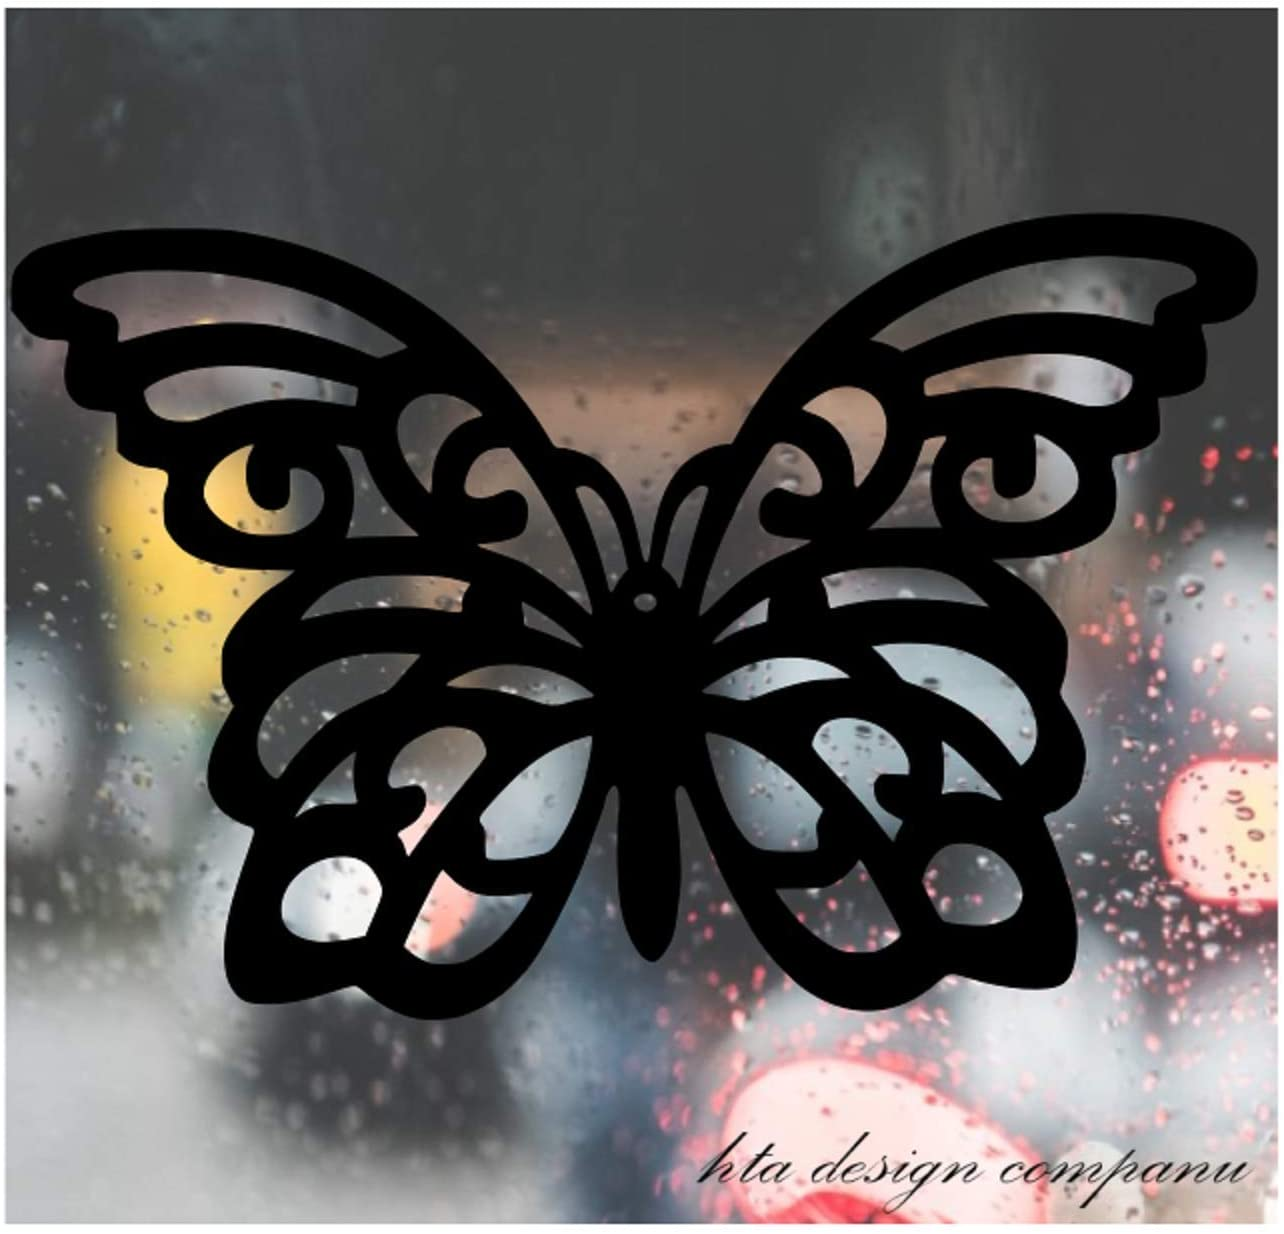 HTA Custom Decal Car for Butterfly with Spread Wings, Art Decal for Car, Truck, Jeep, Window, Motorcycle, Motorcycle, Helmet, Bumper, Decal for Laptop, Phone, Home Decoration / 5 in x 3 in/Black